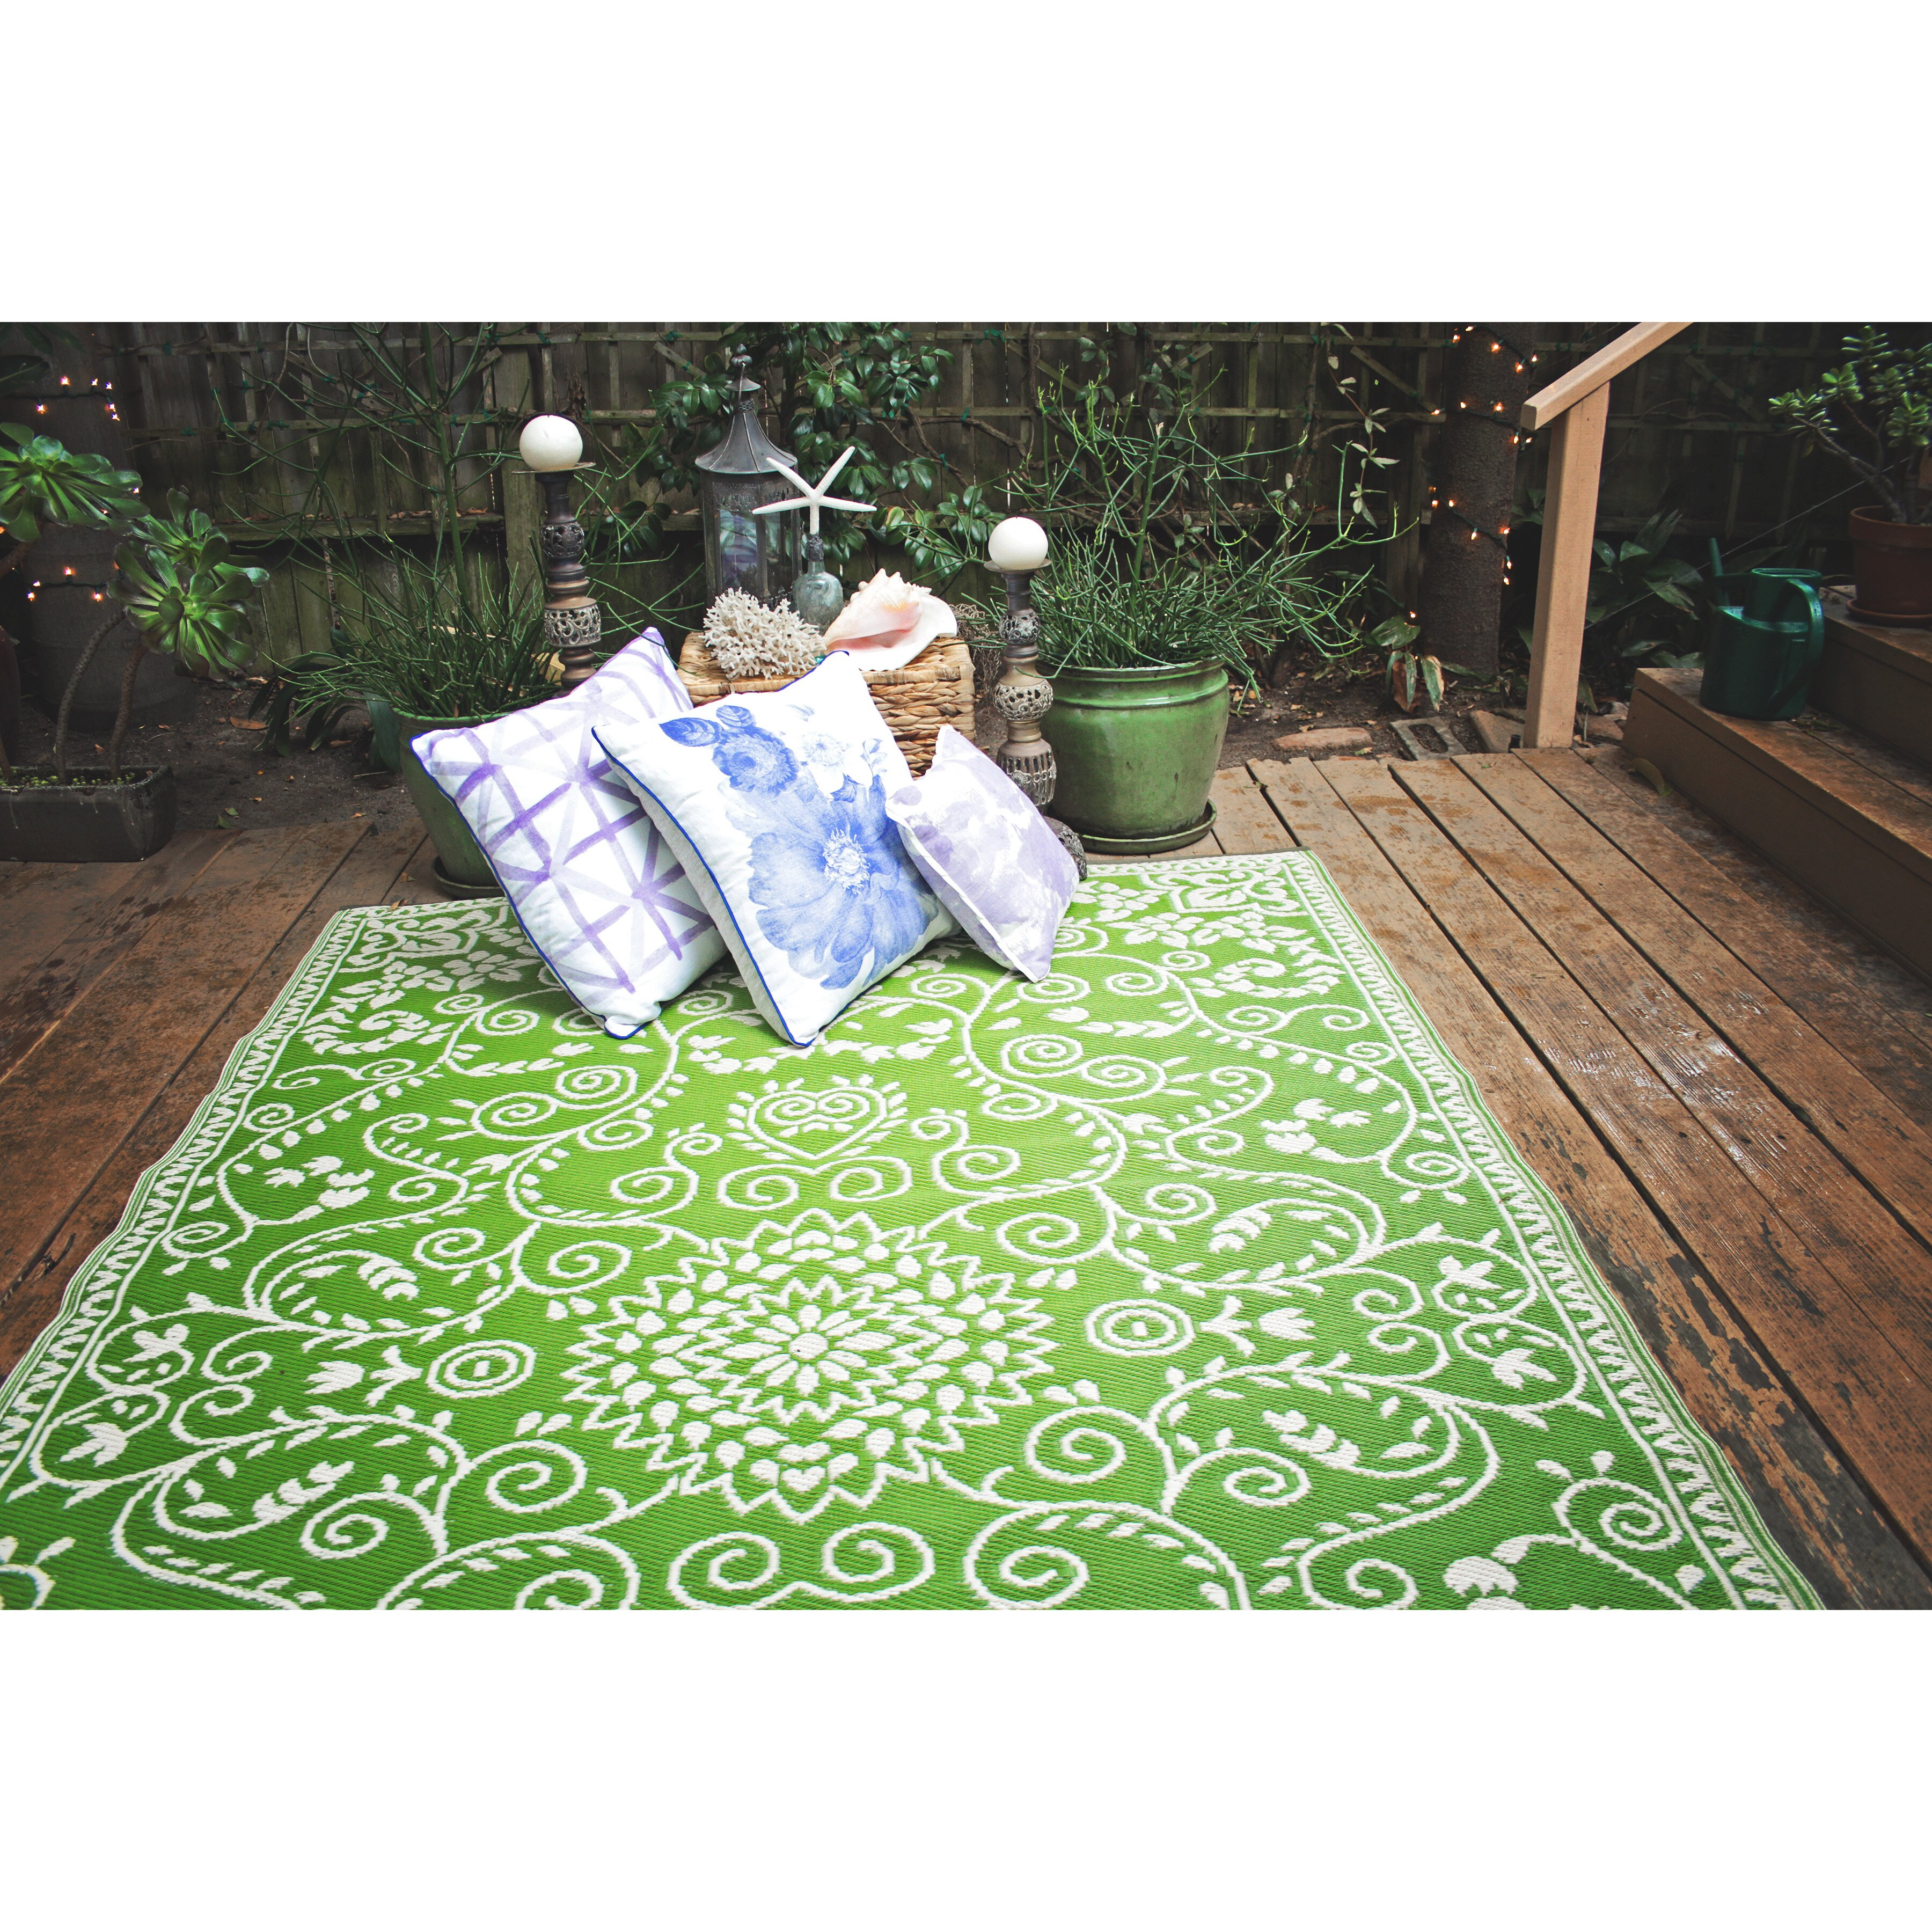 Fab rugs world murano lime green indoor outdoor area rug for Indoor outdoor carpet green